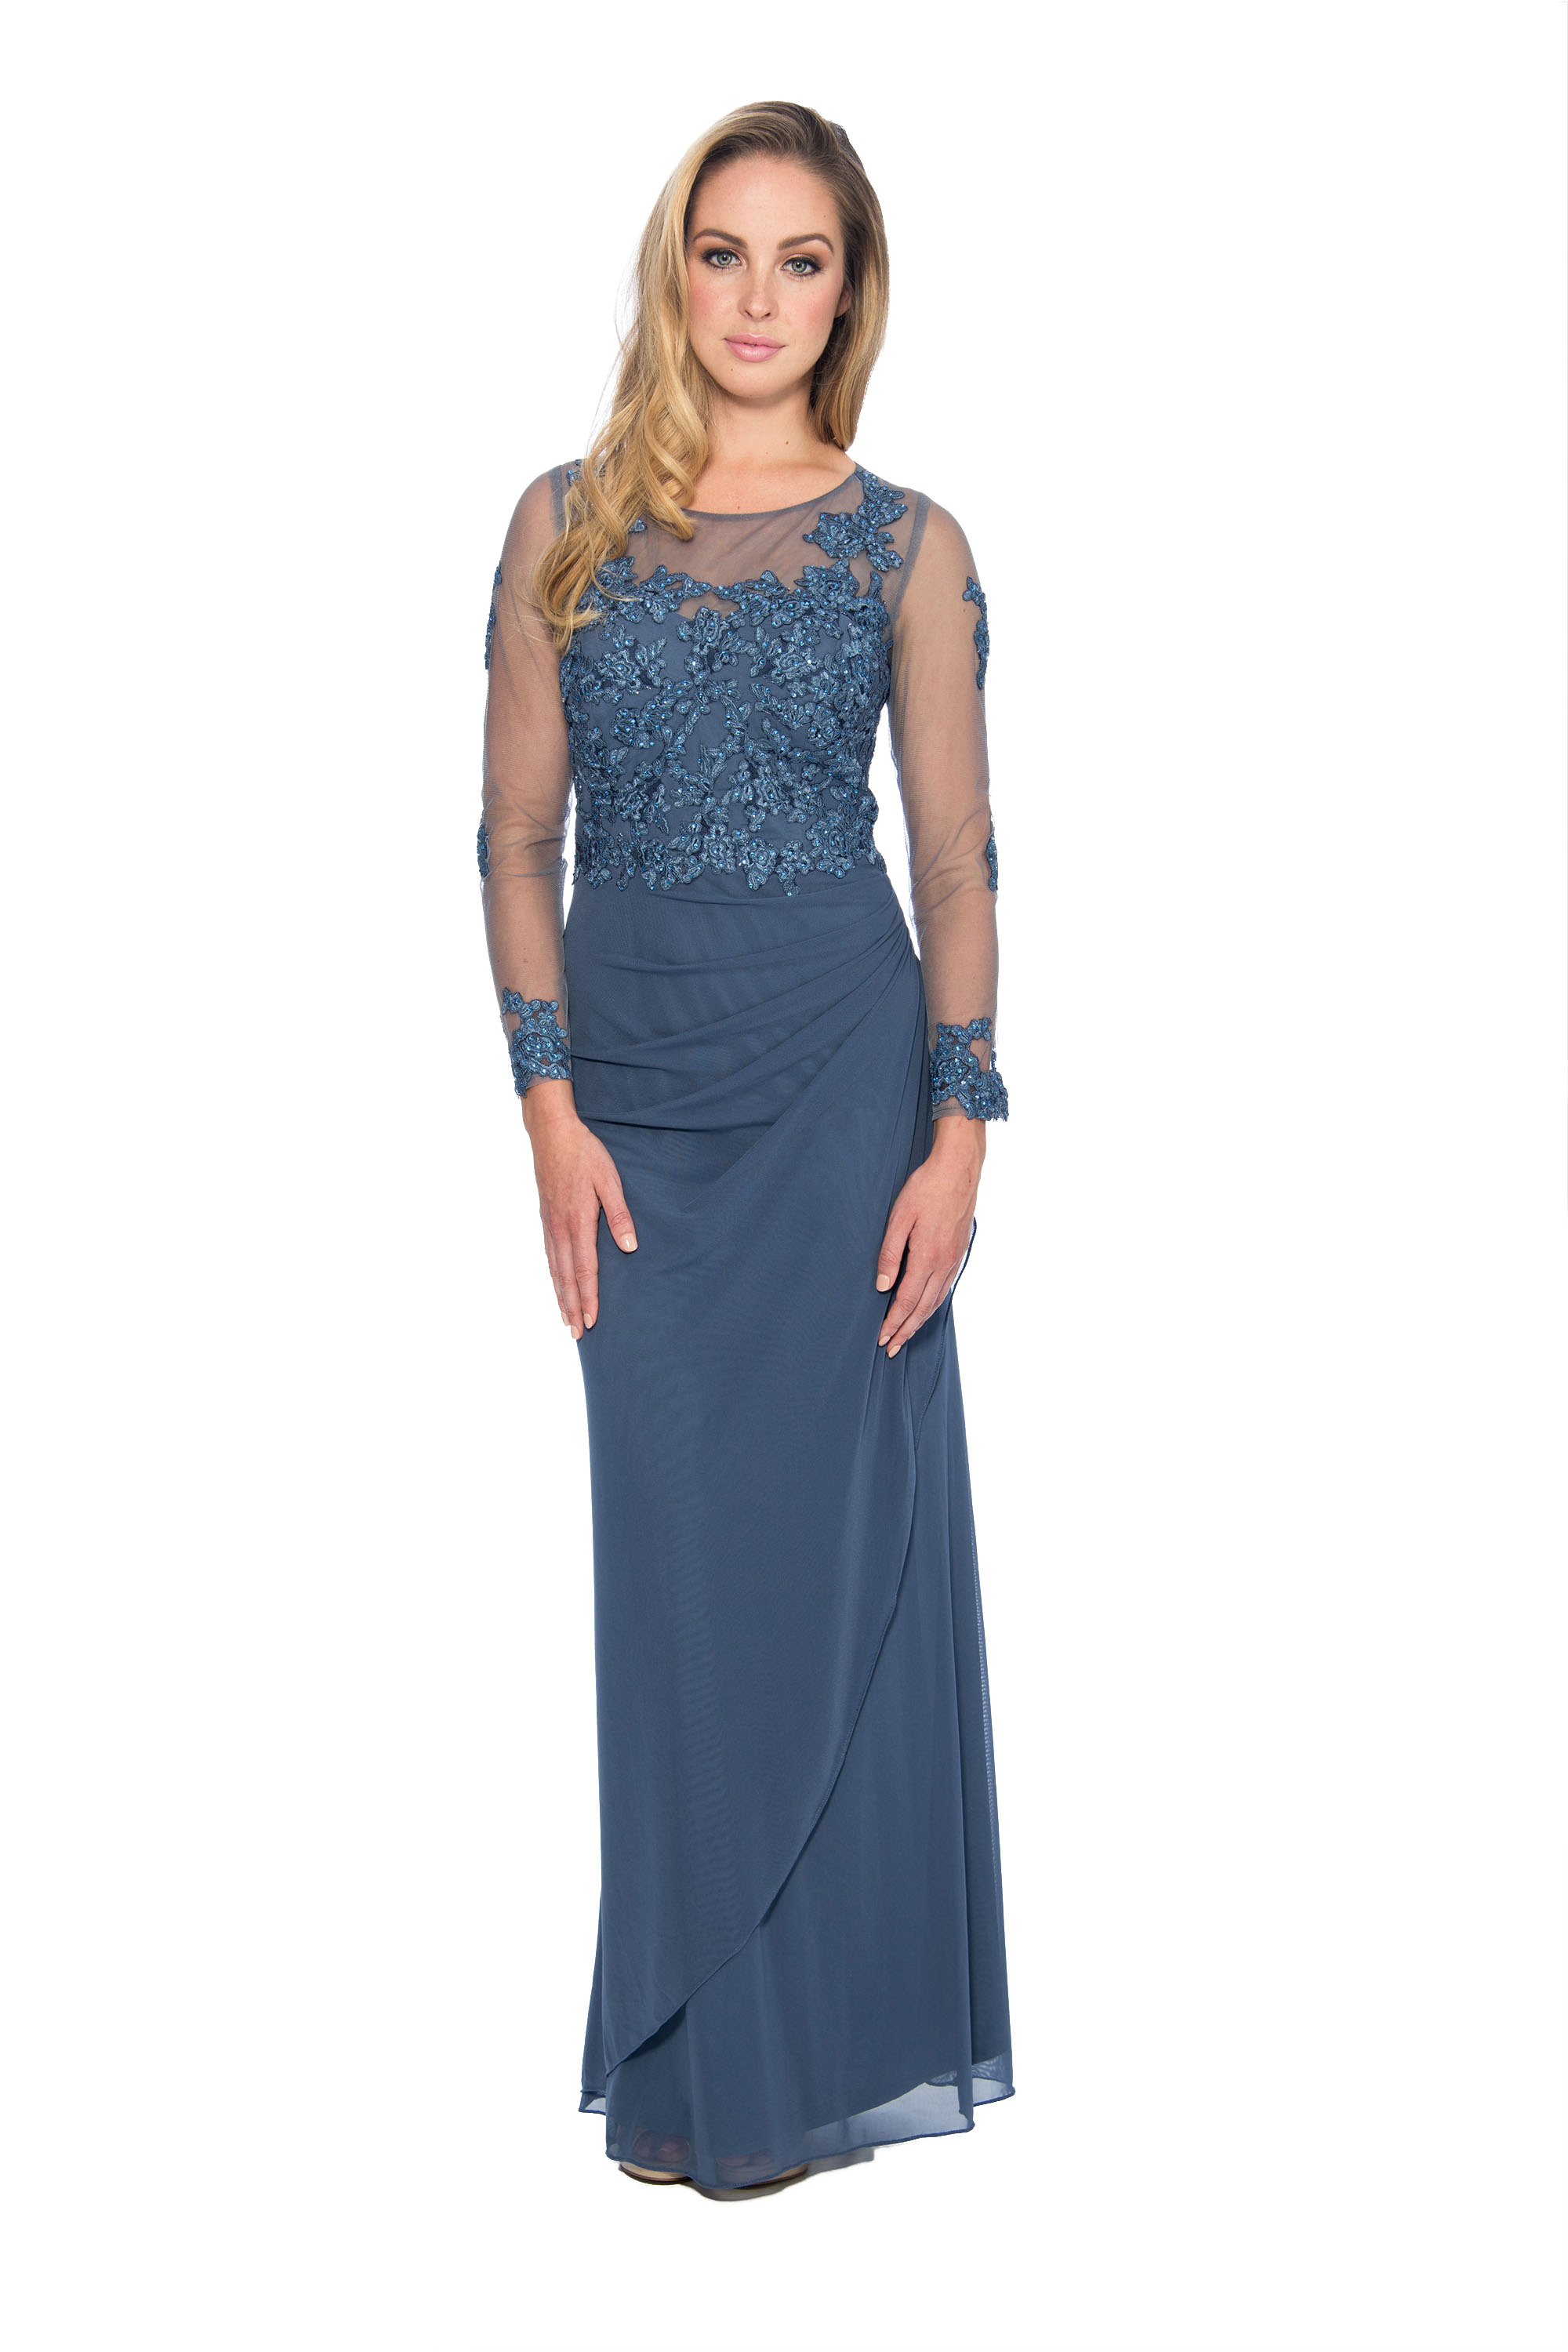 Plus Size Formal Evening Gowns